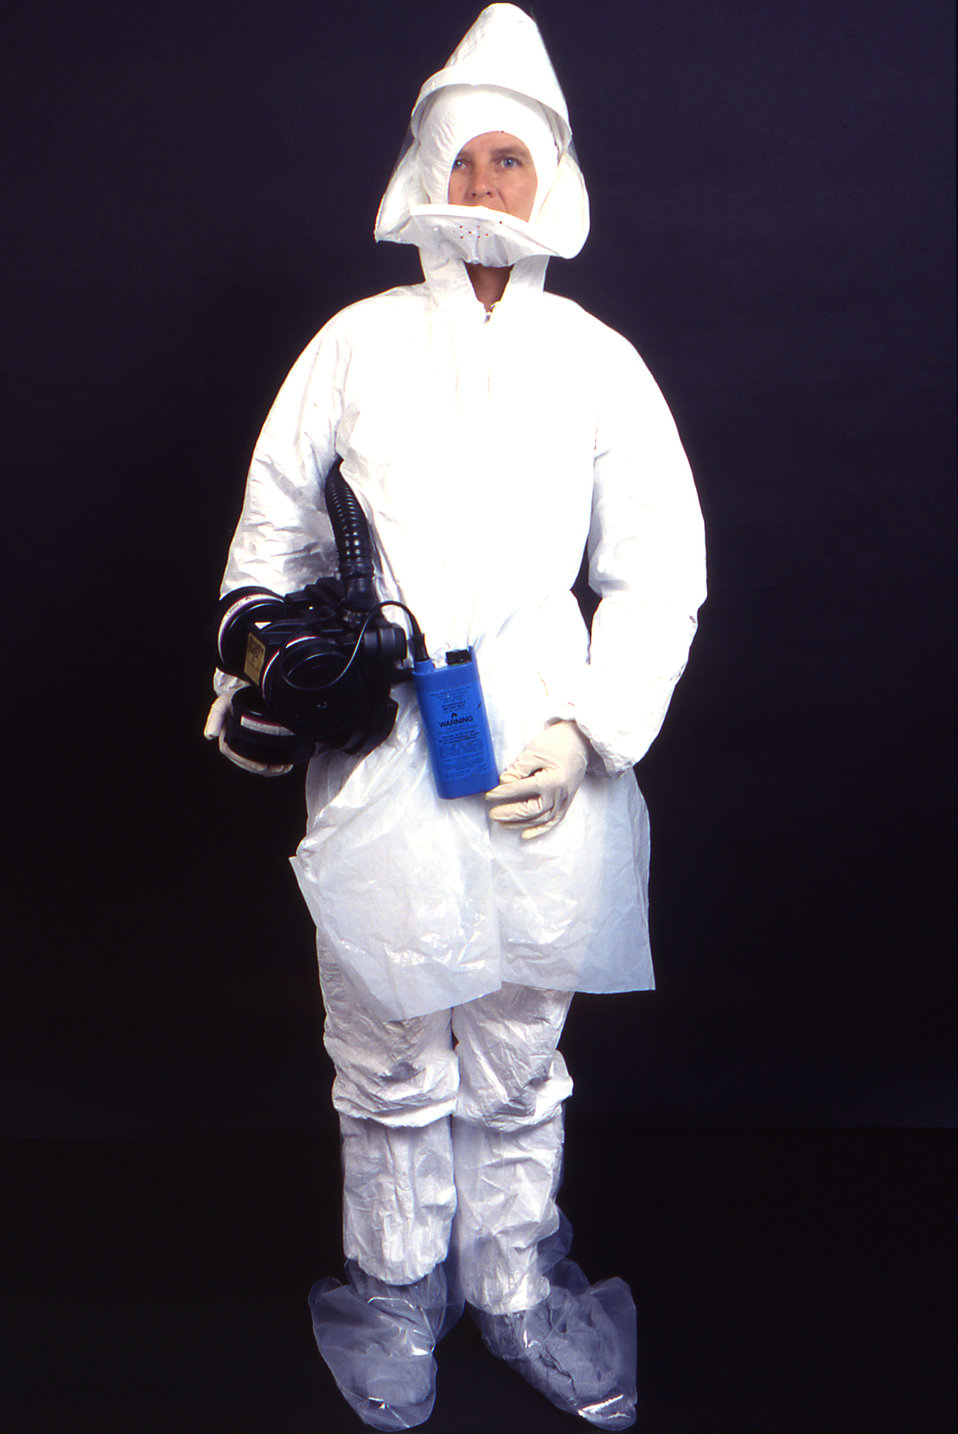 This 1995 image depicts an anterior view of a laboratory technician wearing garments usually worn by field techs including a disposable whit